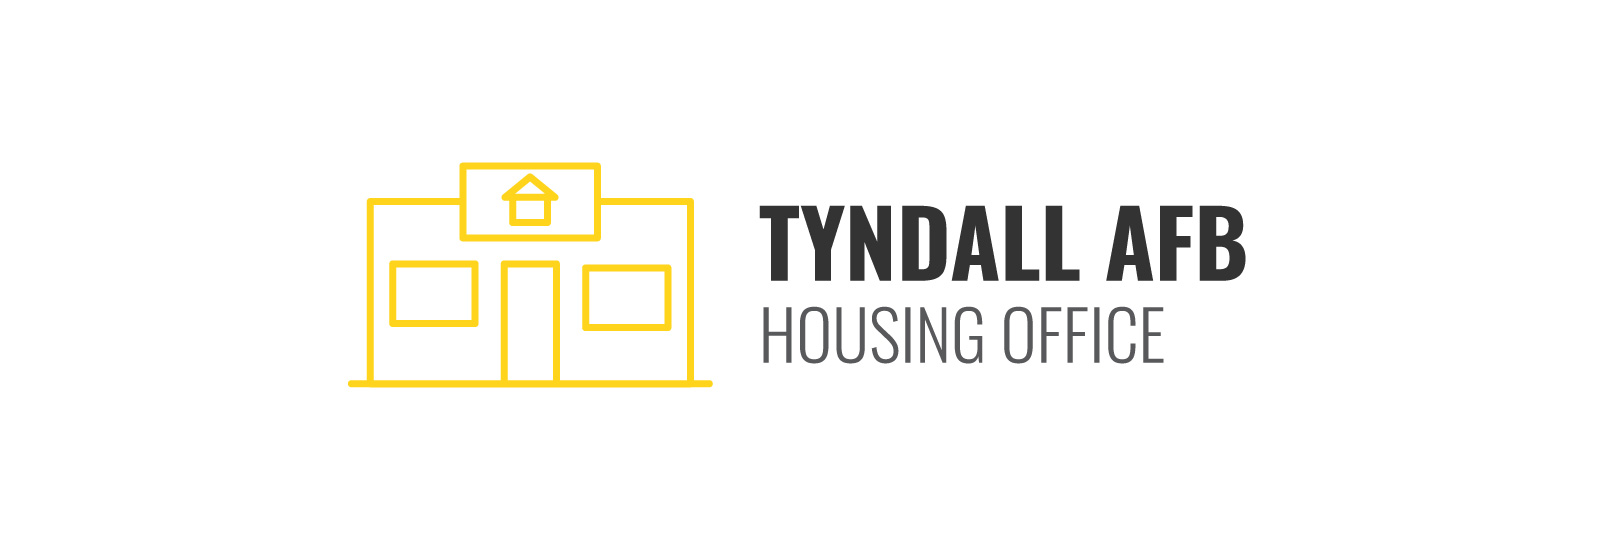 Tyndall AFB Housing Office